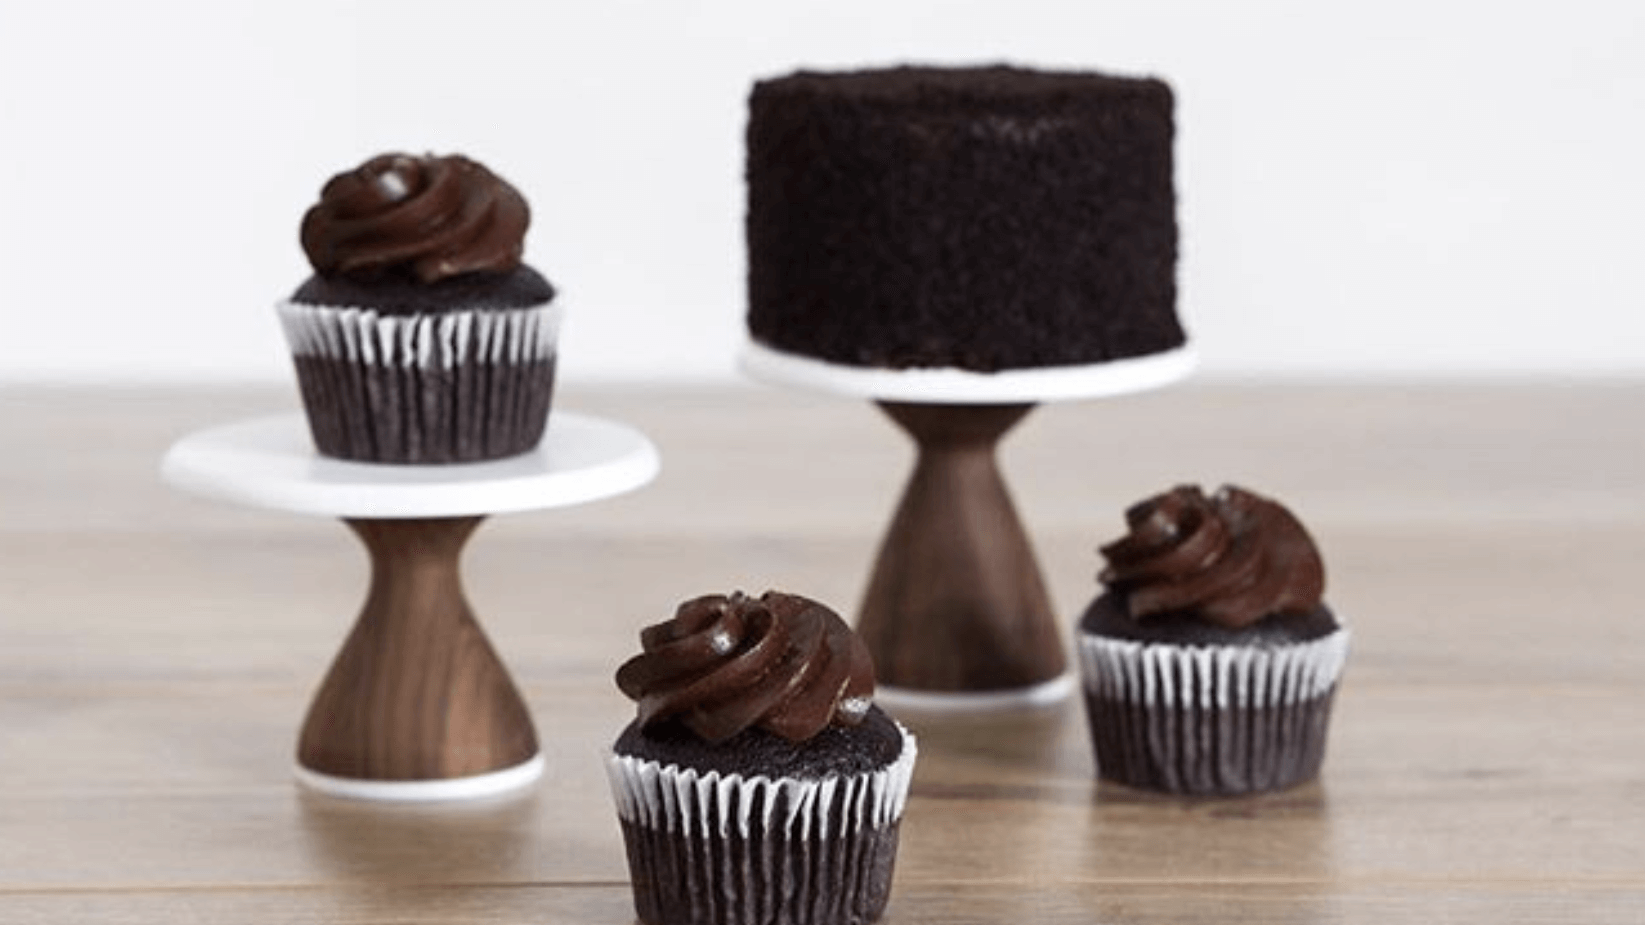 Whole Foods Launches Rubicon Bakers' Vegan Chocolate Blackout Cake